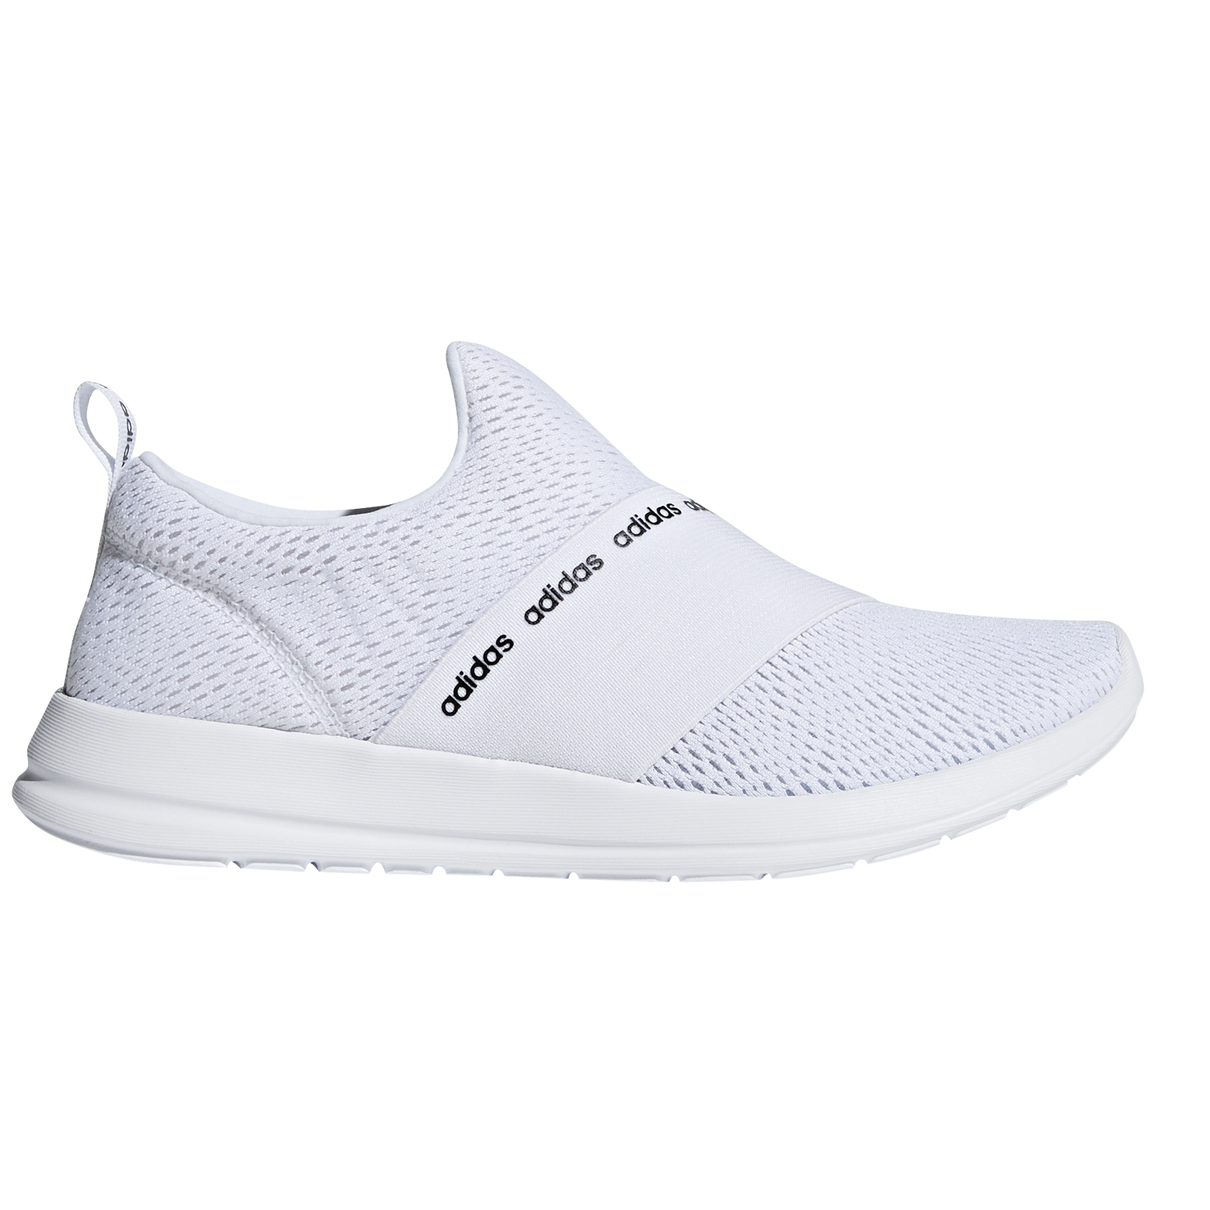 d71a3cc6ccae Adidas Cloudfoam Refine Adapt - Womens Sneakers - Triple White Grey ...